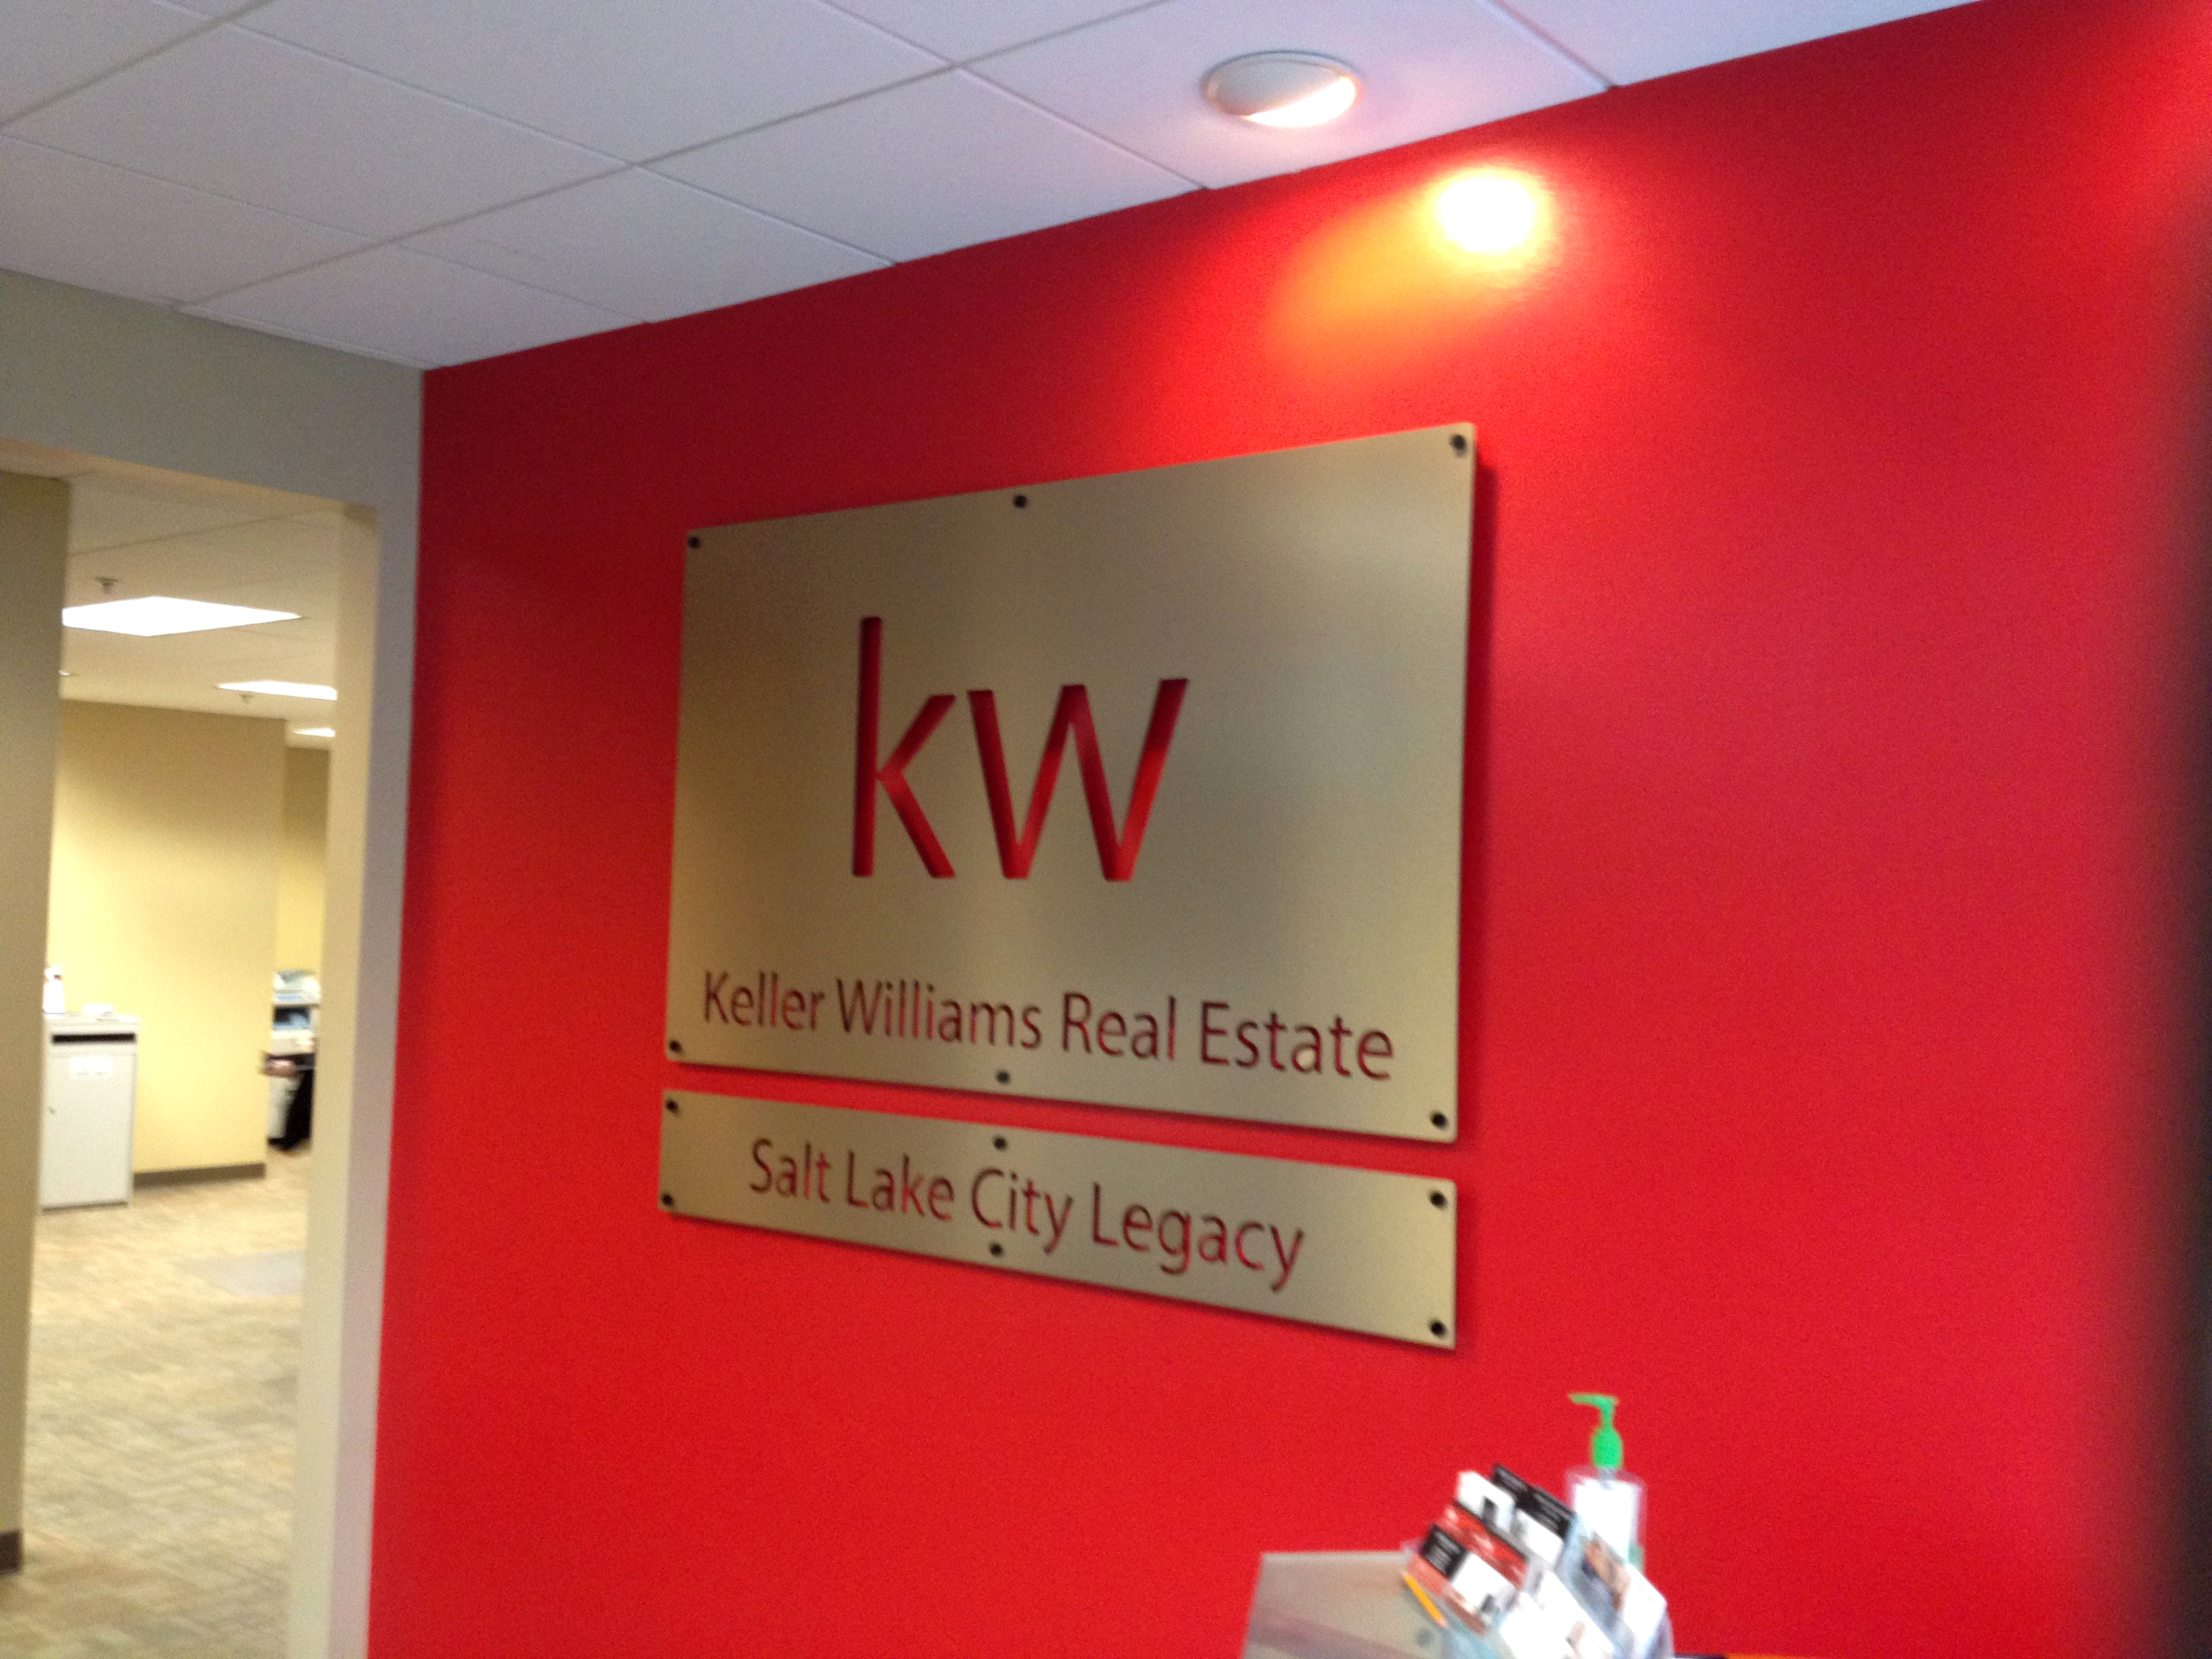 Keller Williams Salt Lake City Legac